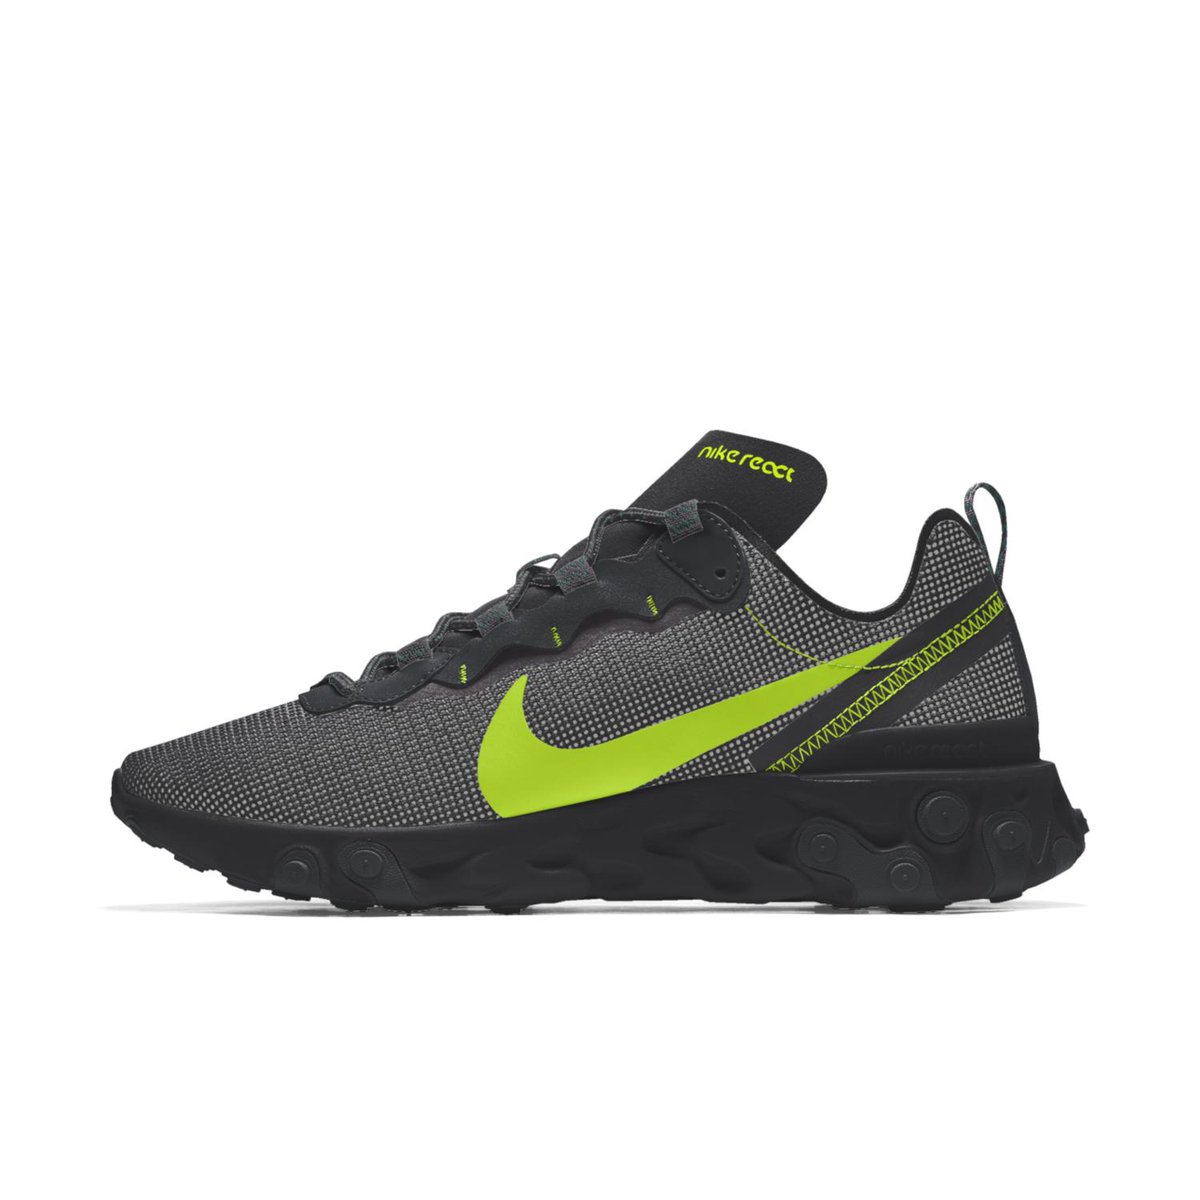 ba237397a5e AD  YESSS.. Design your own Nike React Element 55 on NikeID here   https   t.co ChflVsKeIO ·  heskicks https   bit.ly 2VEWHmO · 0 9